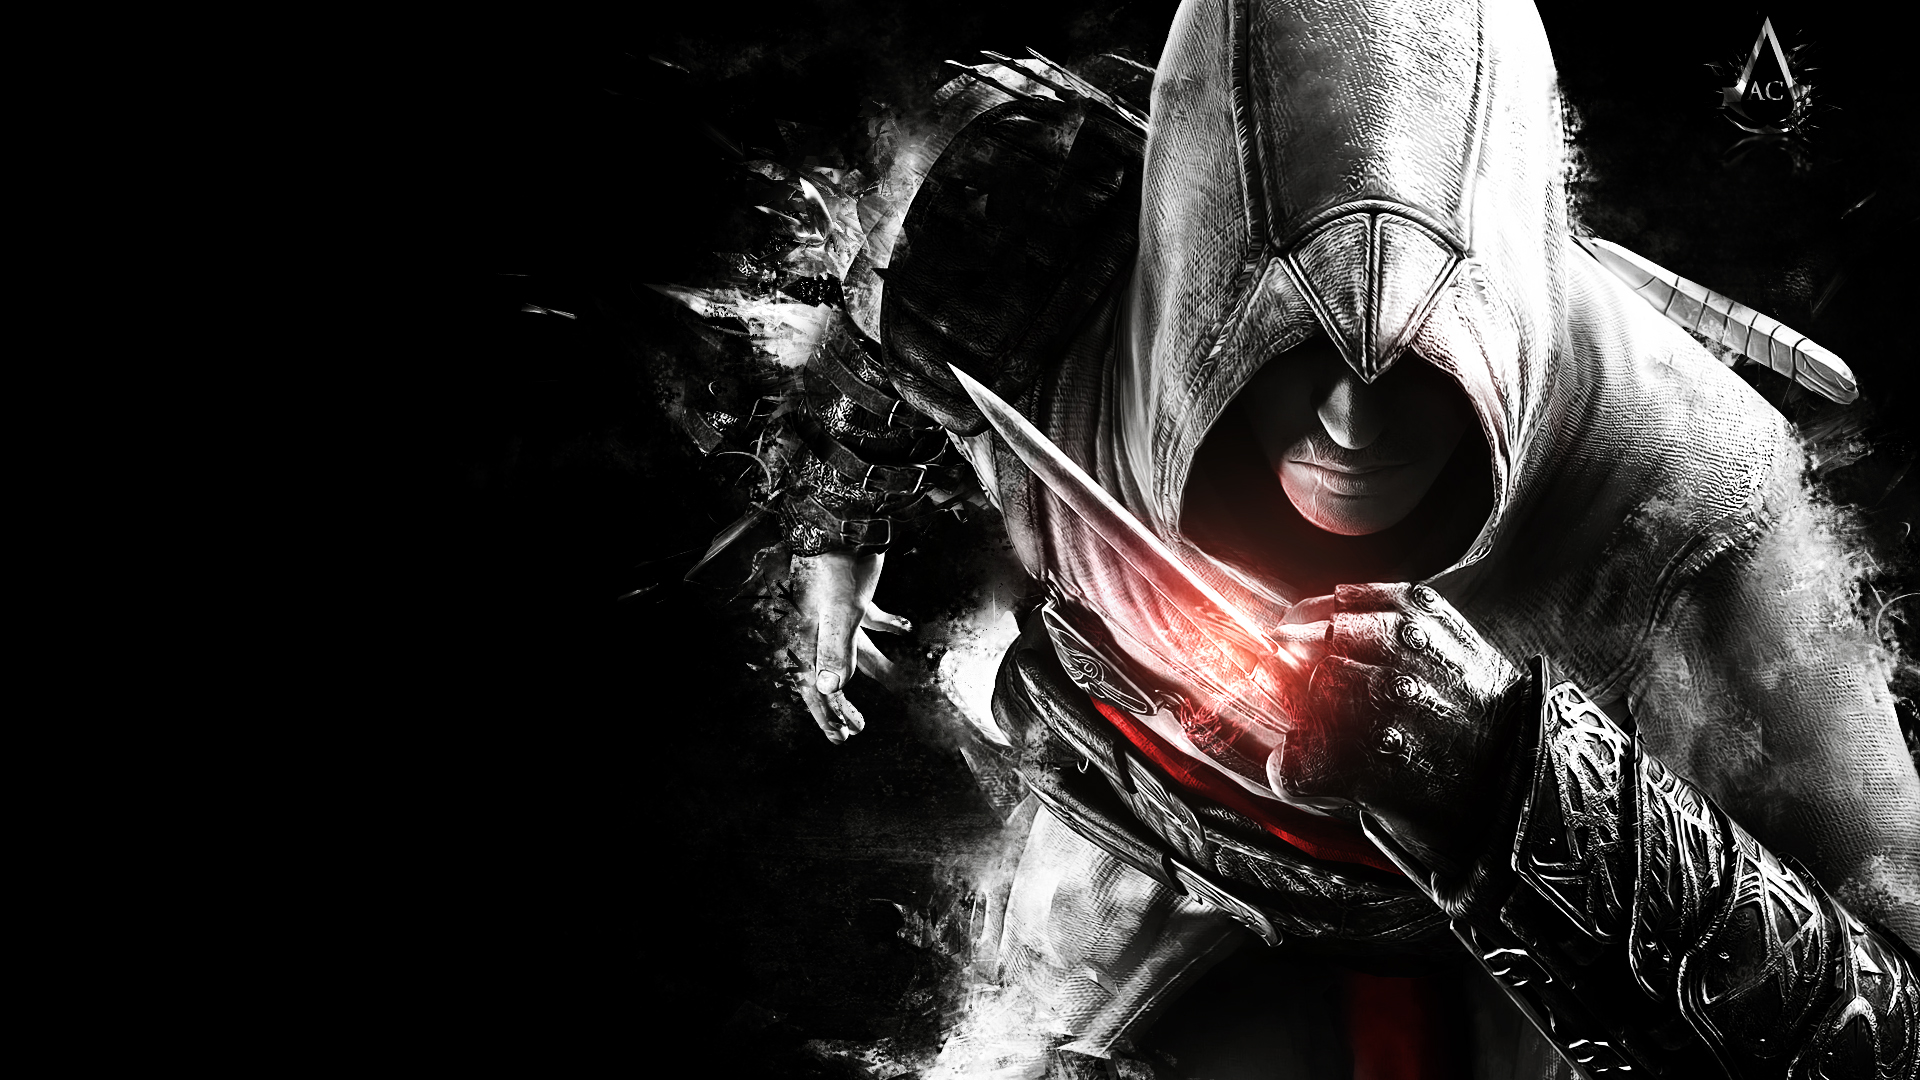 Assassins Creed Wallpaper Full HD WIP by Rykouy on DeviantArt